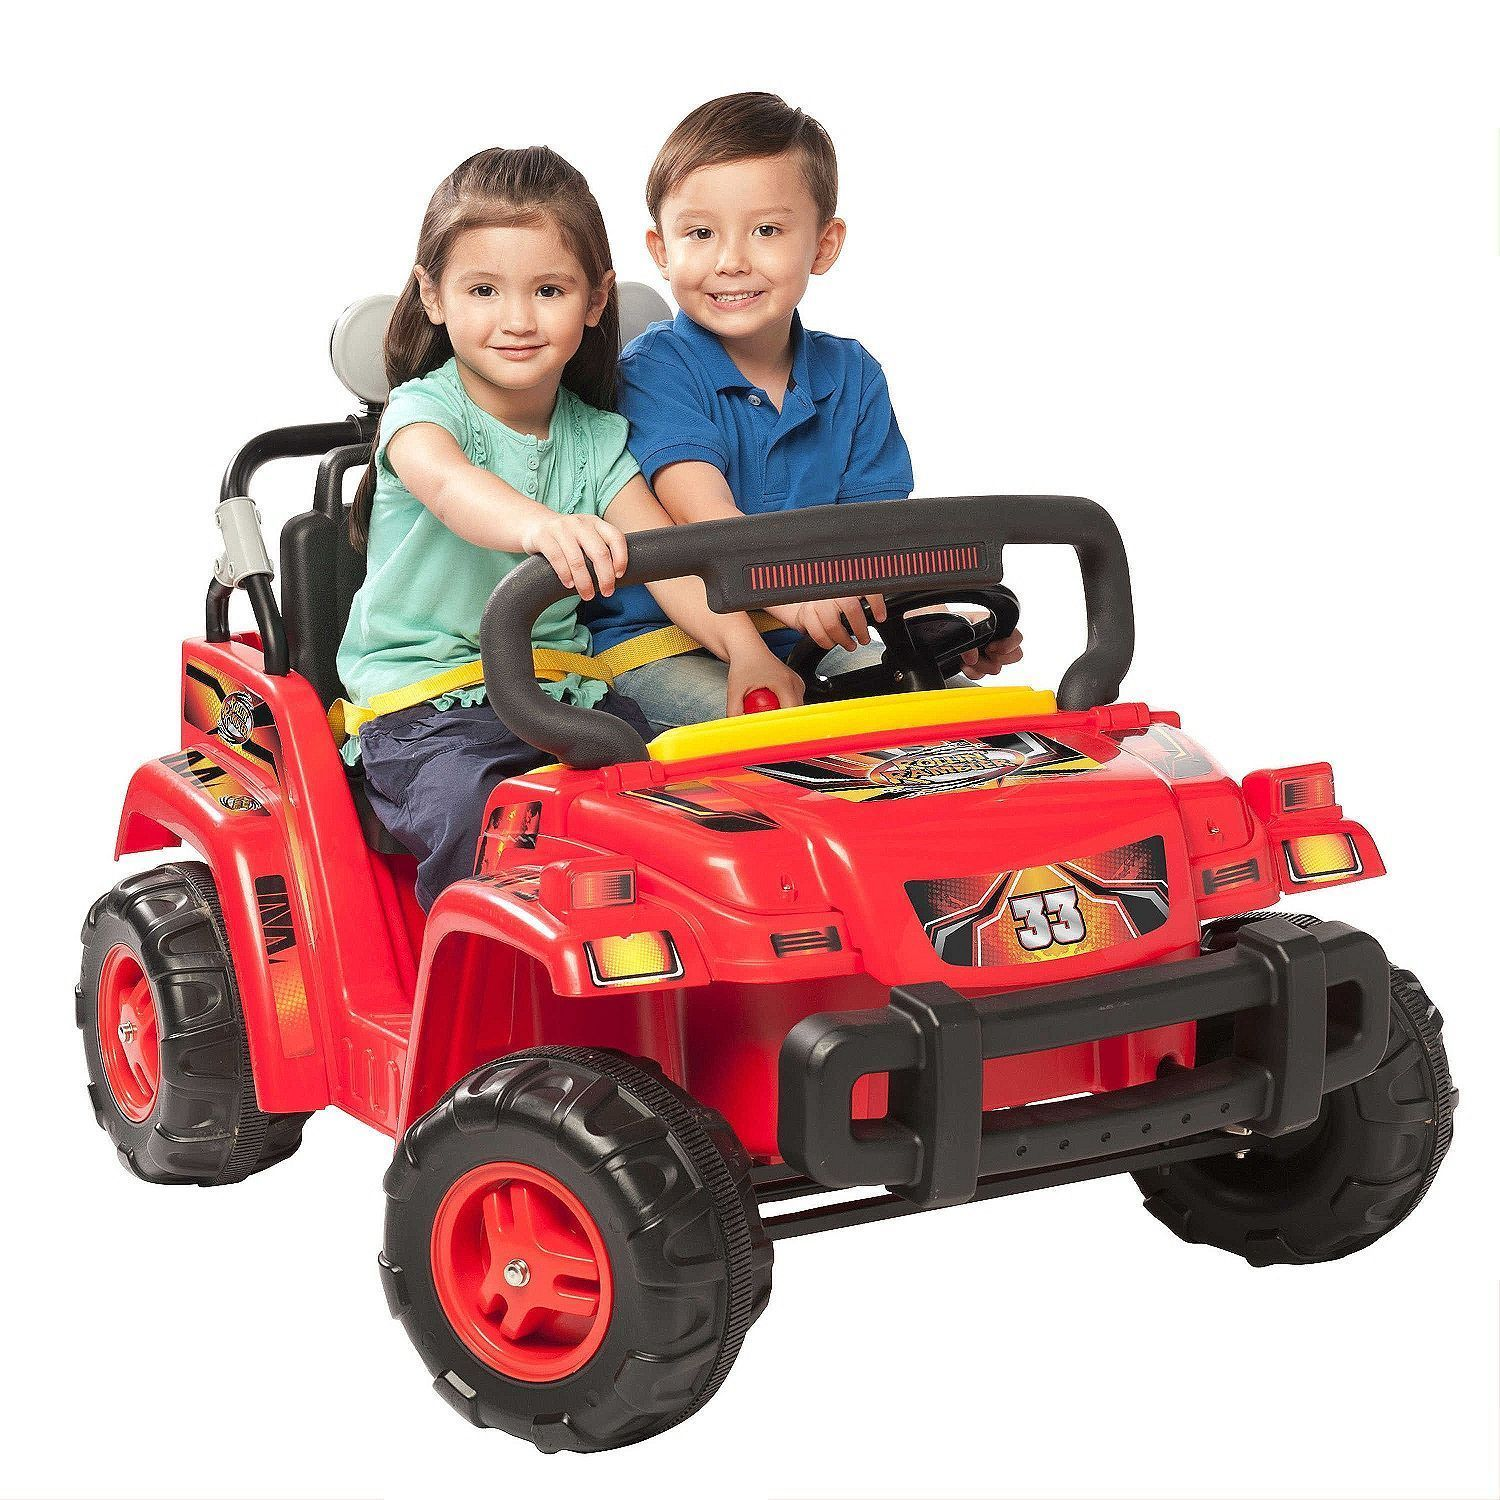 Kids Electric Cars 2 Seater Ride on toys, Toy car, Kids